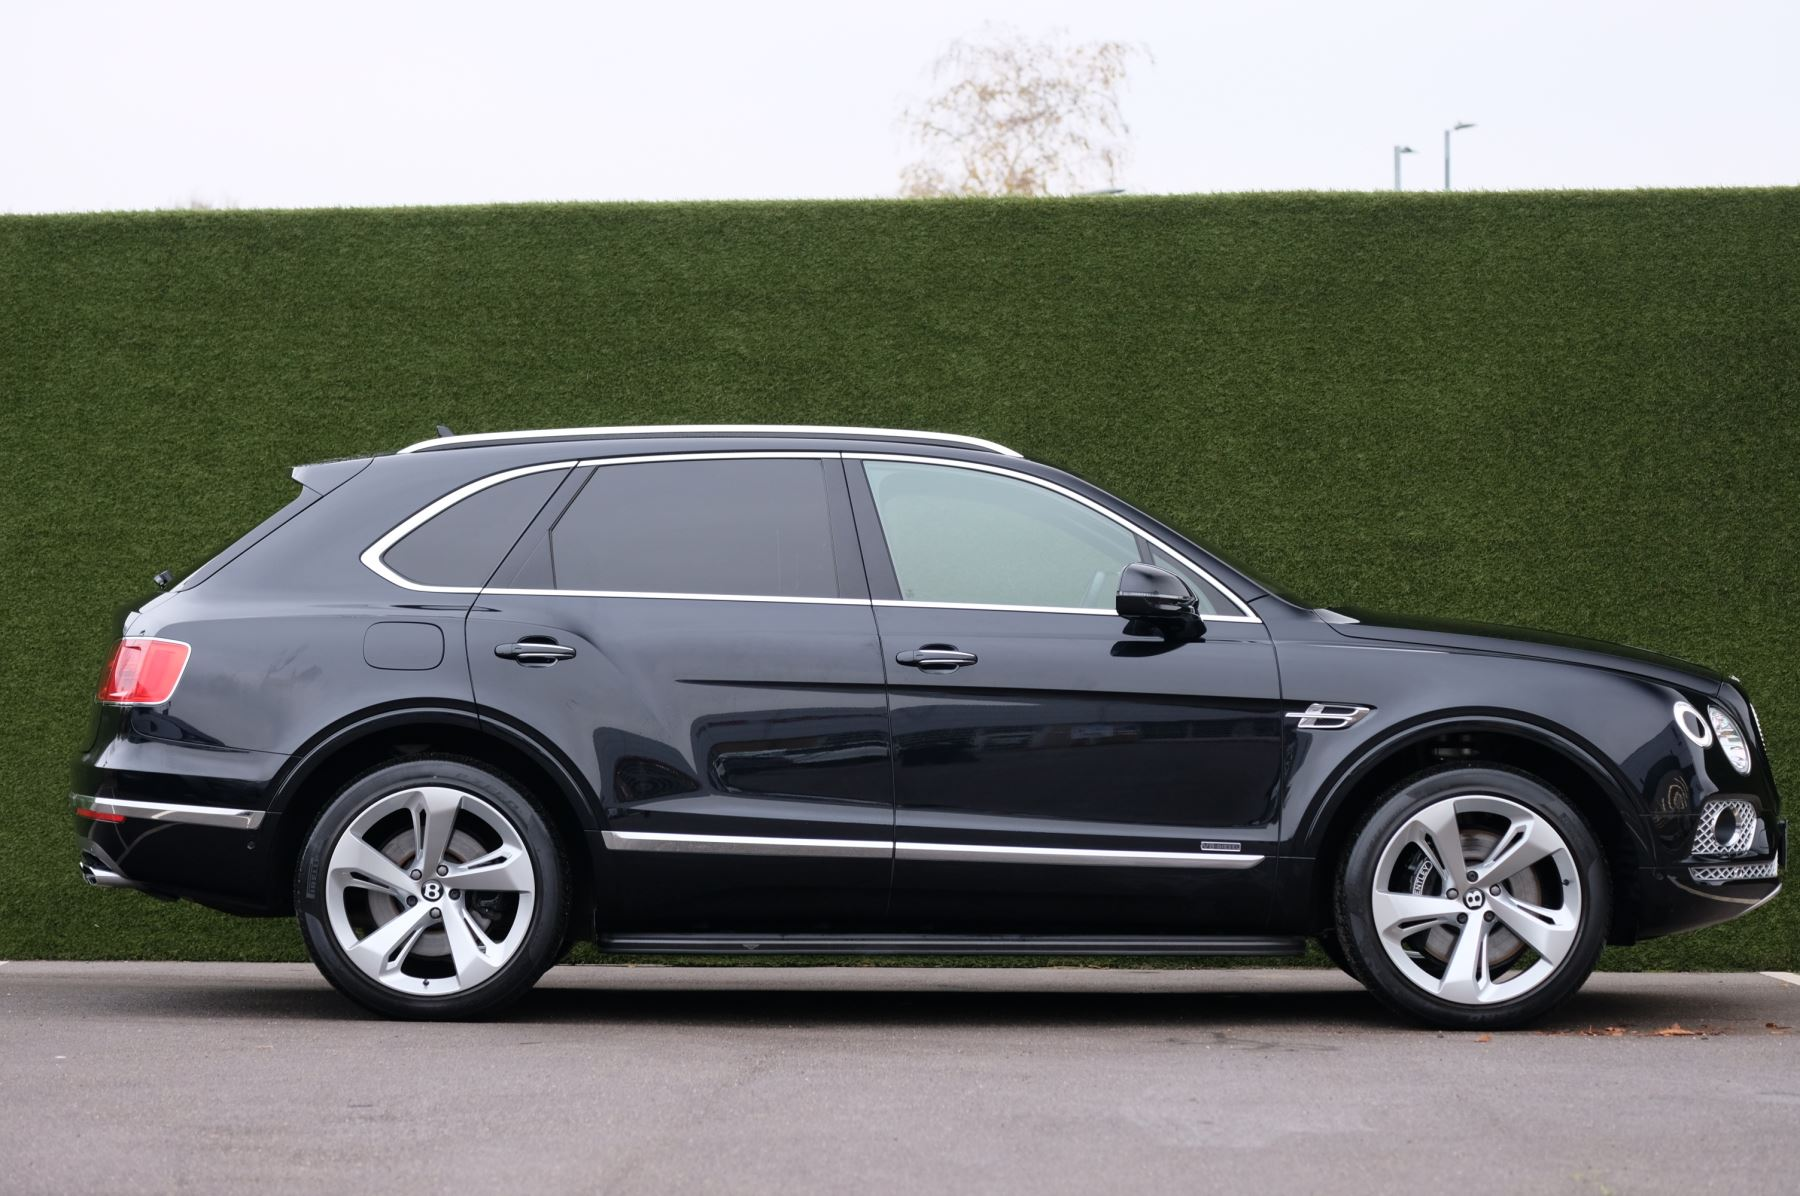 Bentley Bentayga Diesel 4.0 V8 Mulliner Driving Spec 5dr Auto - 7 Seat Specification image 3